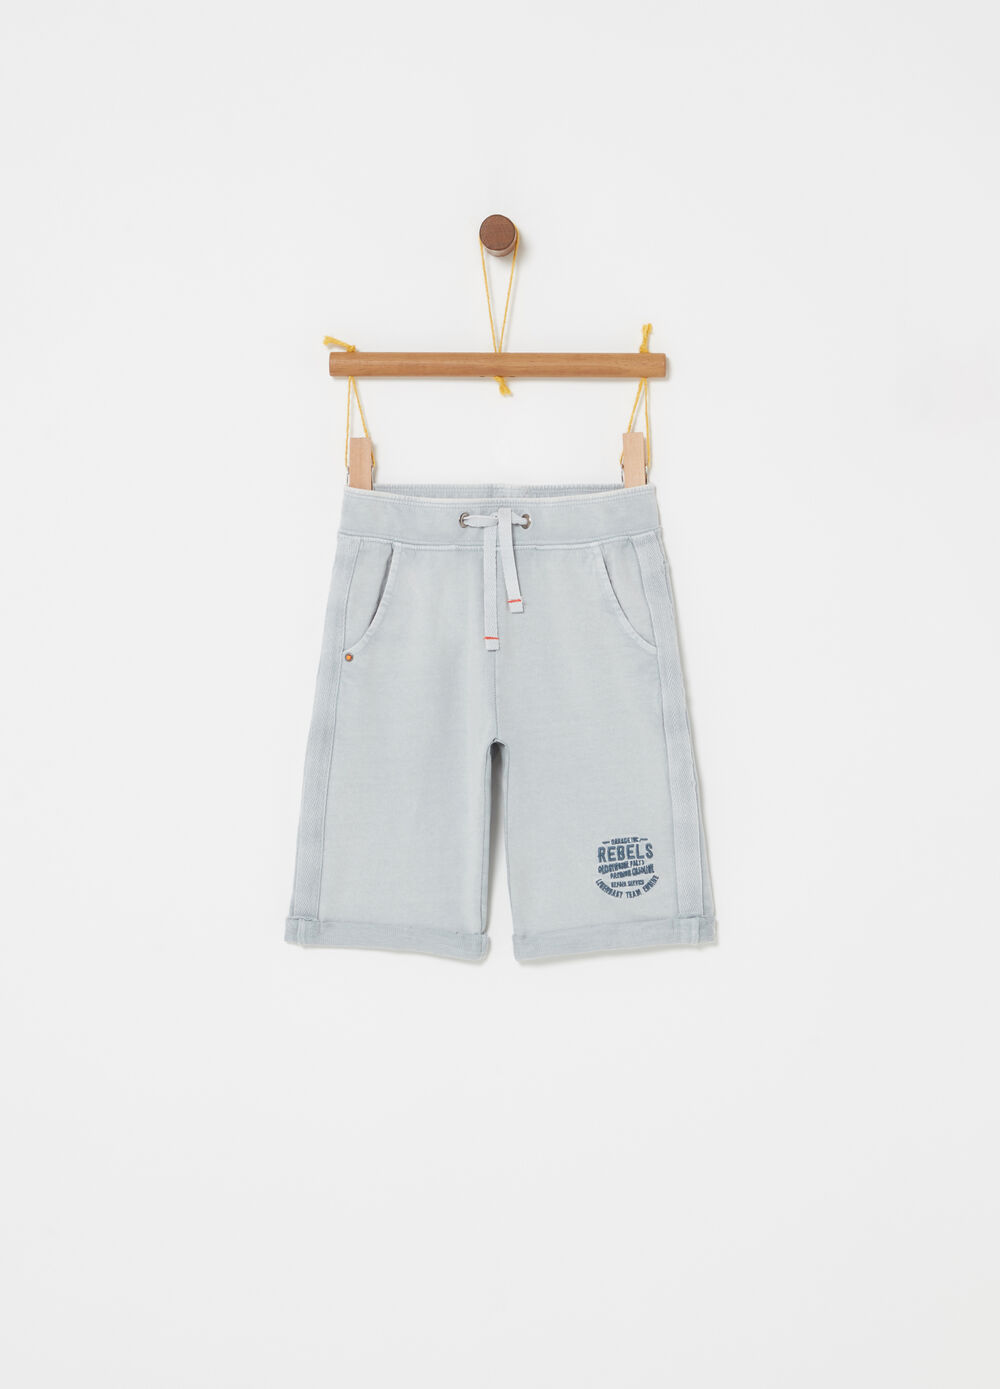 Lightweight fleece shorts with functional pockets